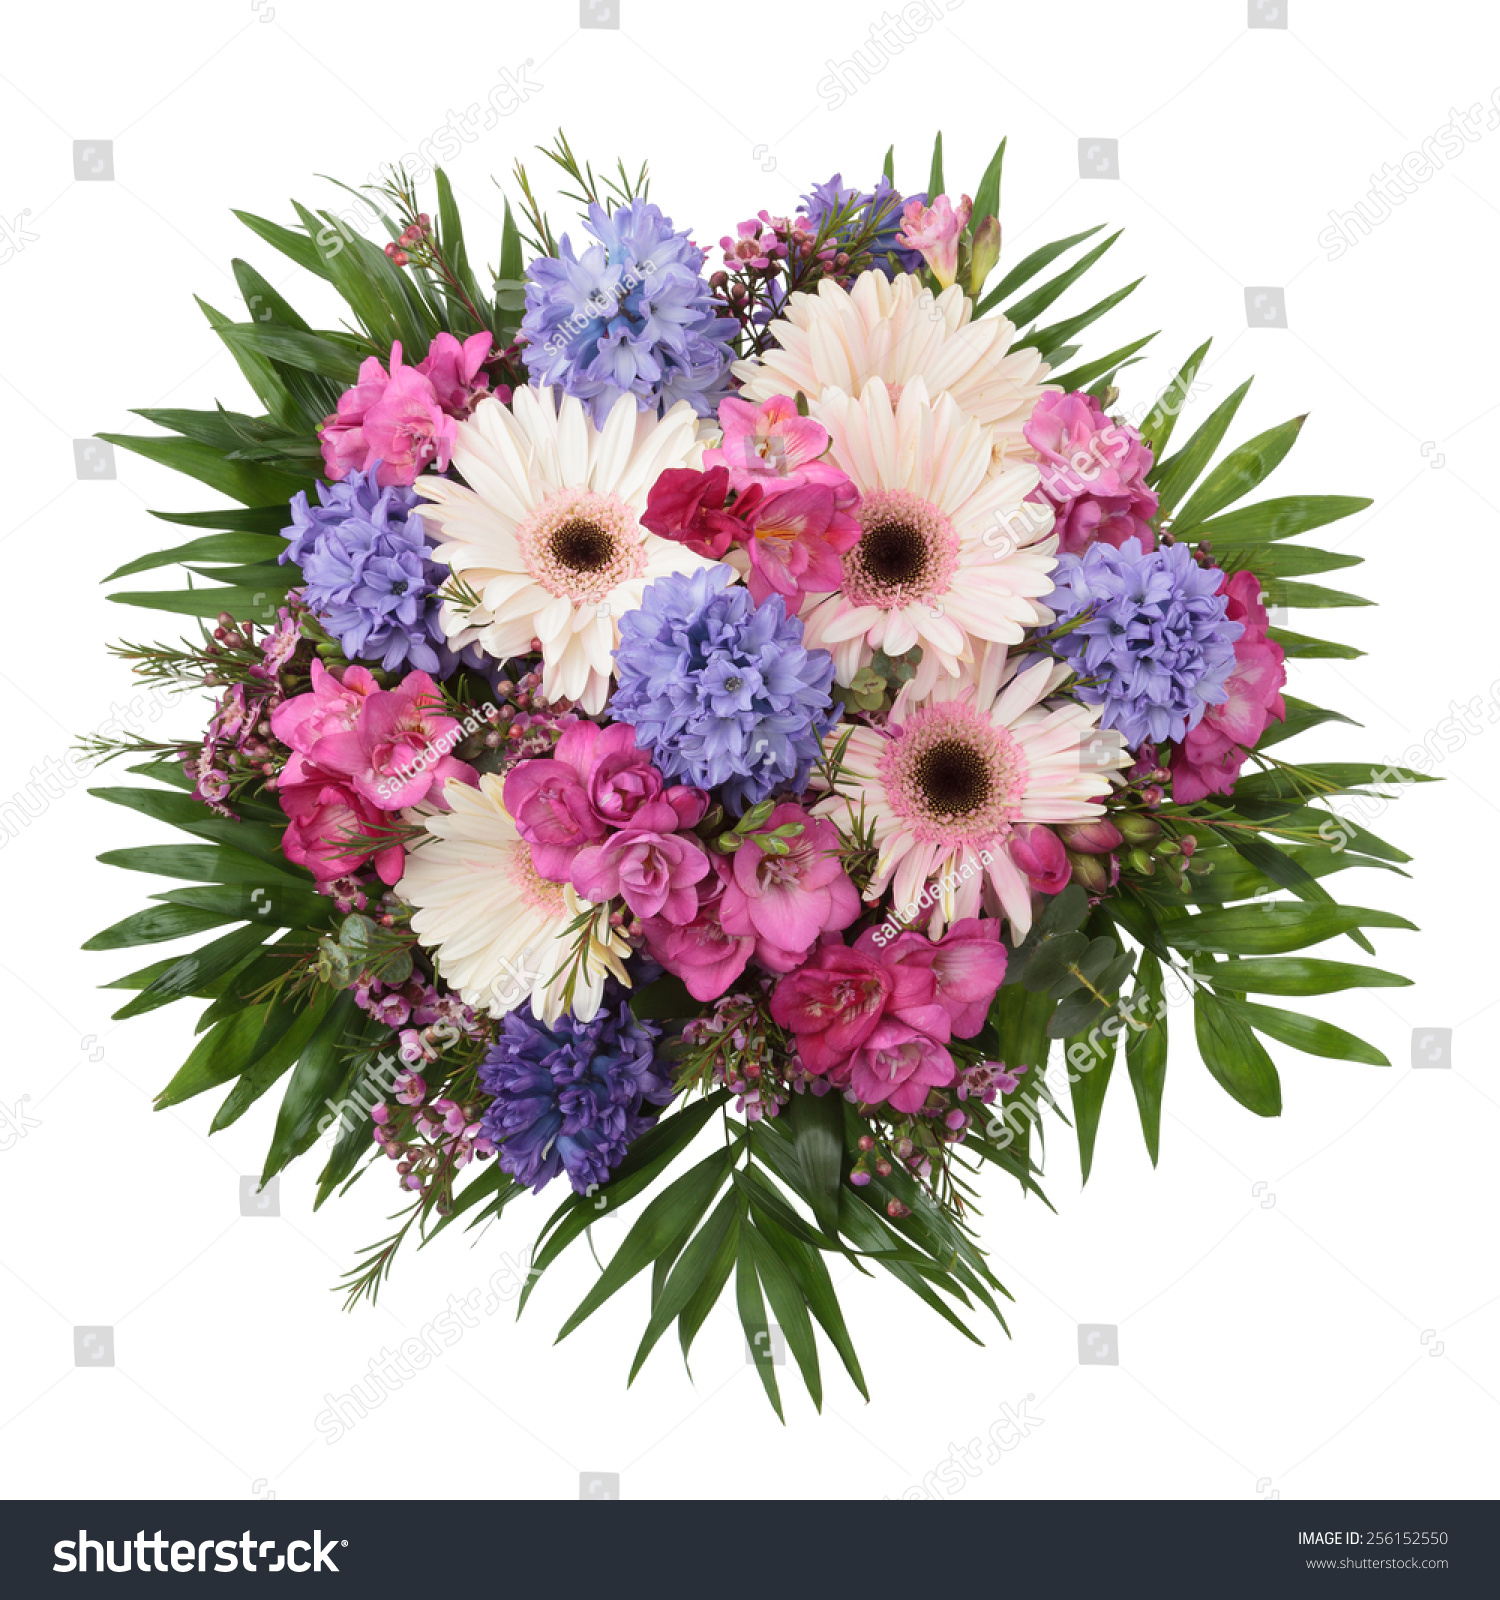 Hyacinth gerber freesia flowers bouquet seen stock photo image hyacinth gerber and freesia flowers bouquet seen from above on white background izmirmasajfo